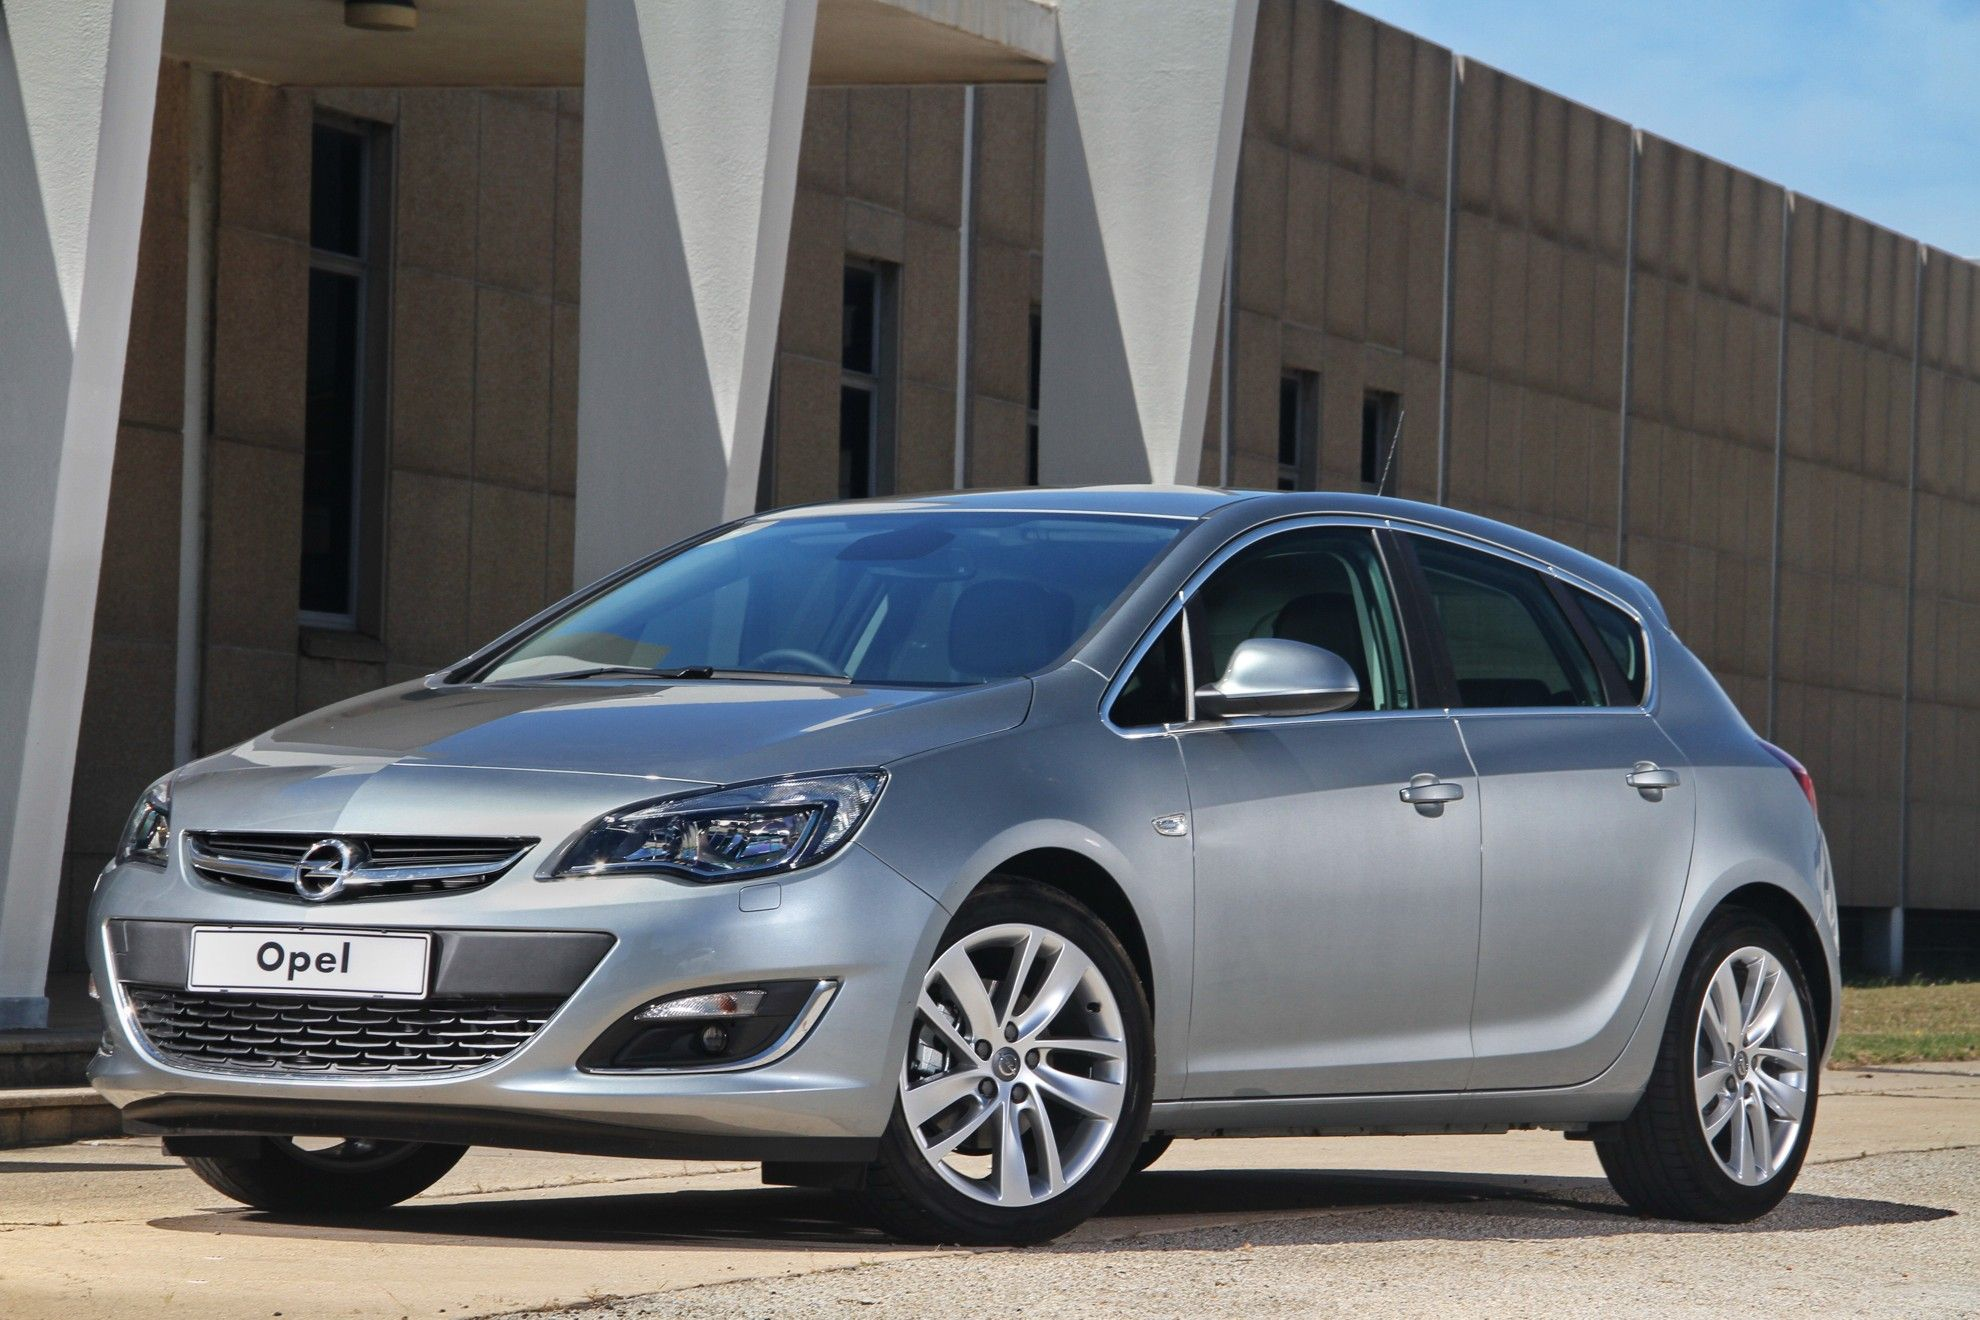 Opel Astra Hatch In South Africa